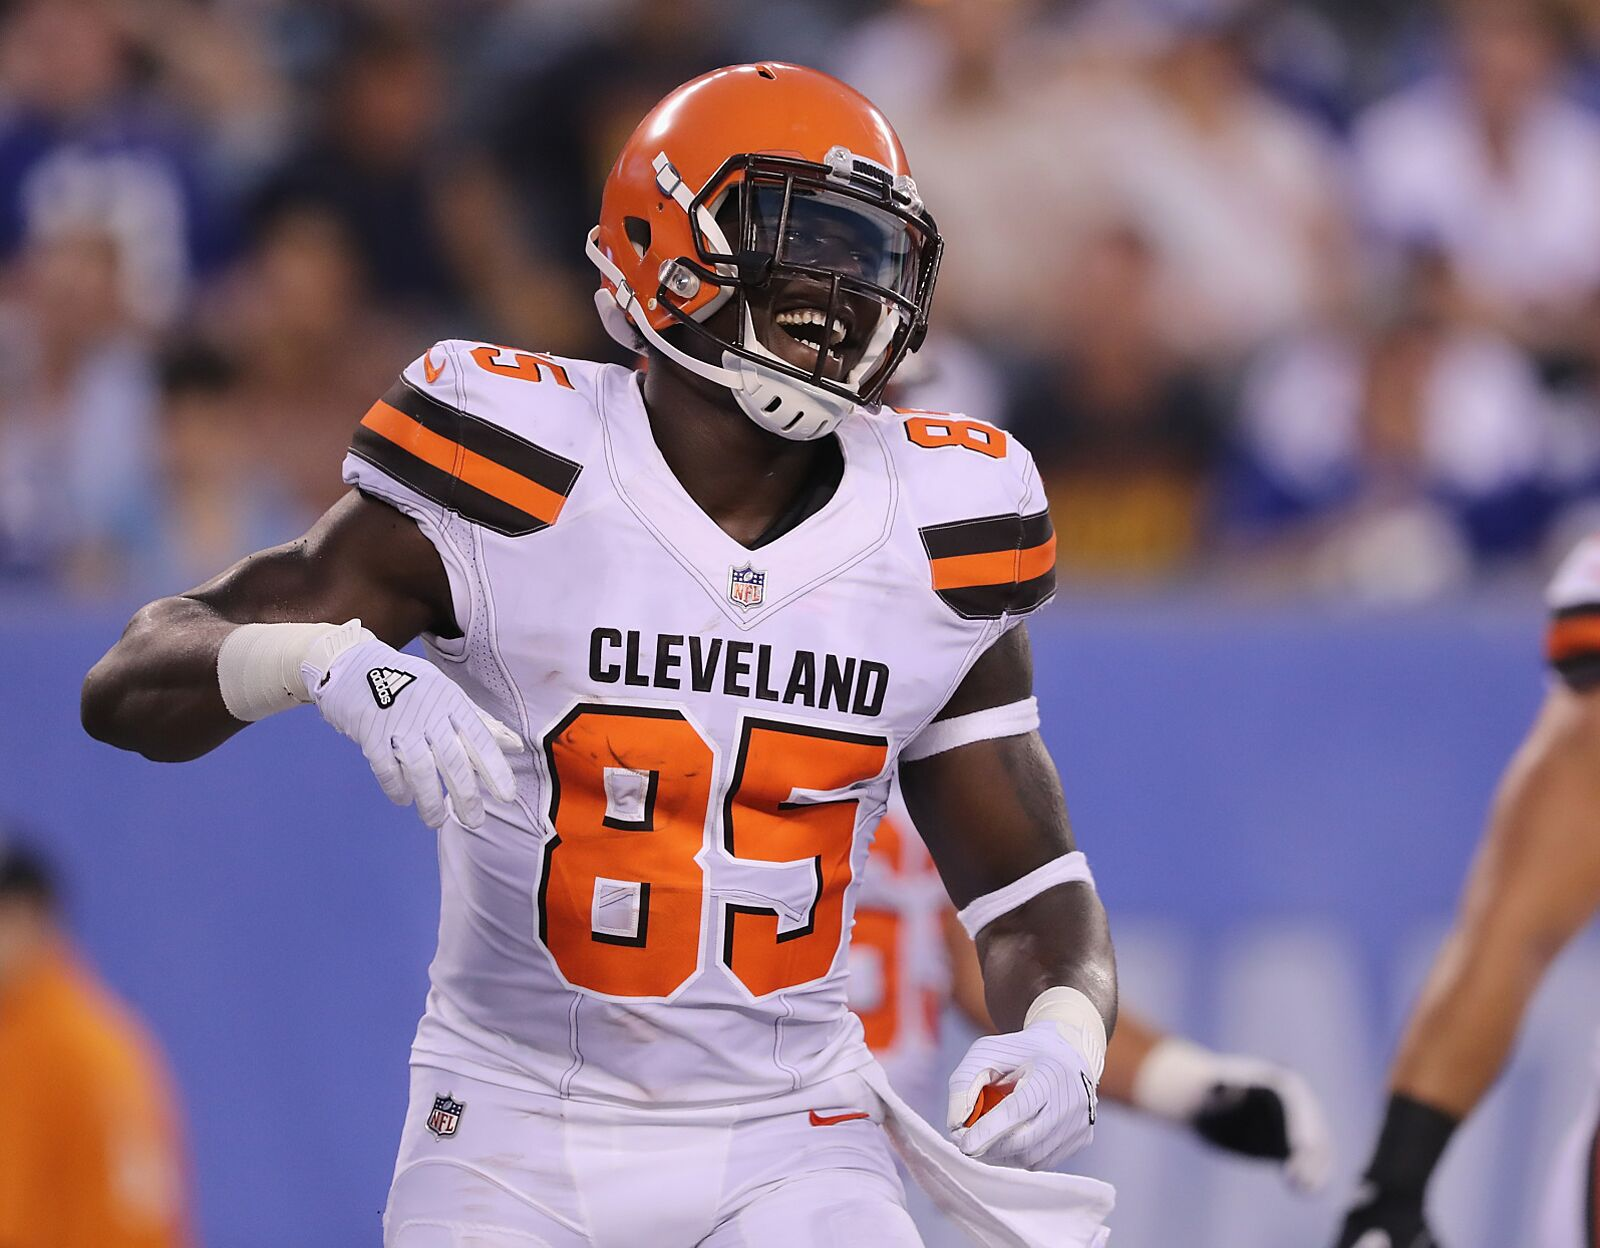 uk availability 8d9df 290c4 Cleveland Browns: 3 Studs and duds from Preseason Week 1 ...